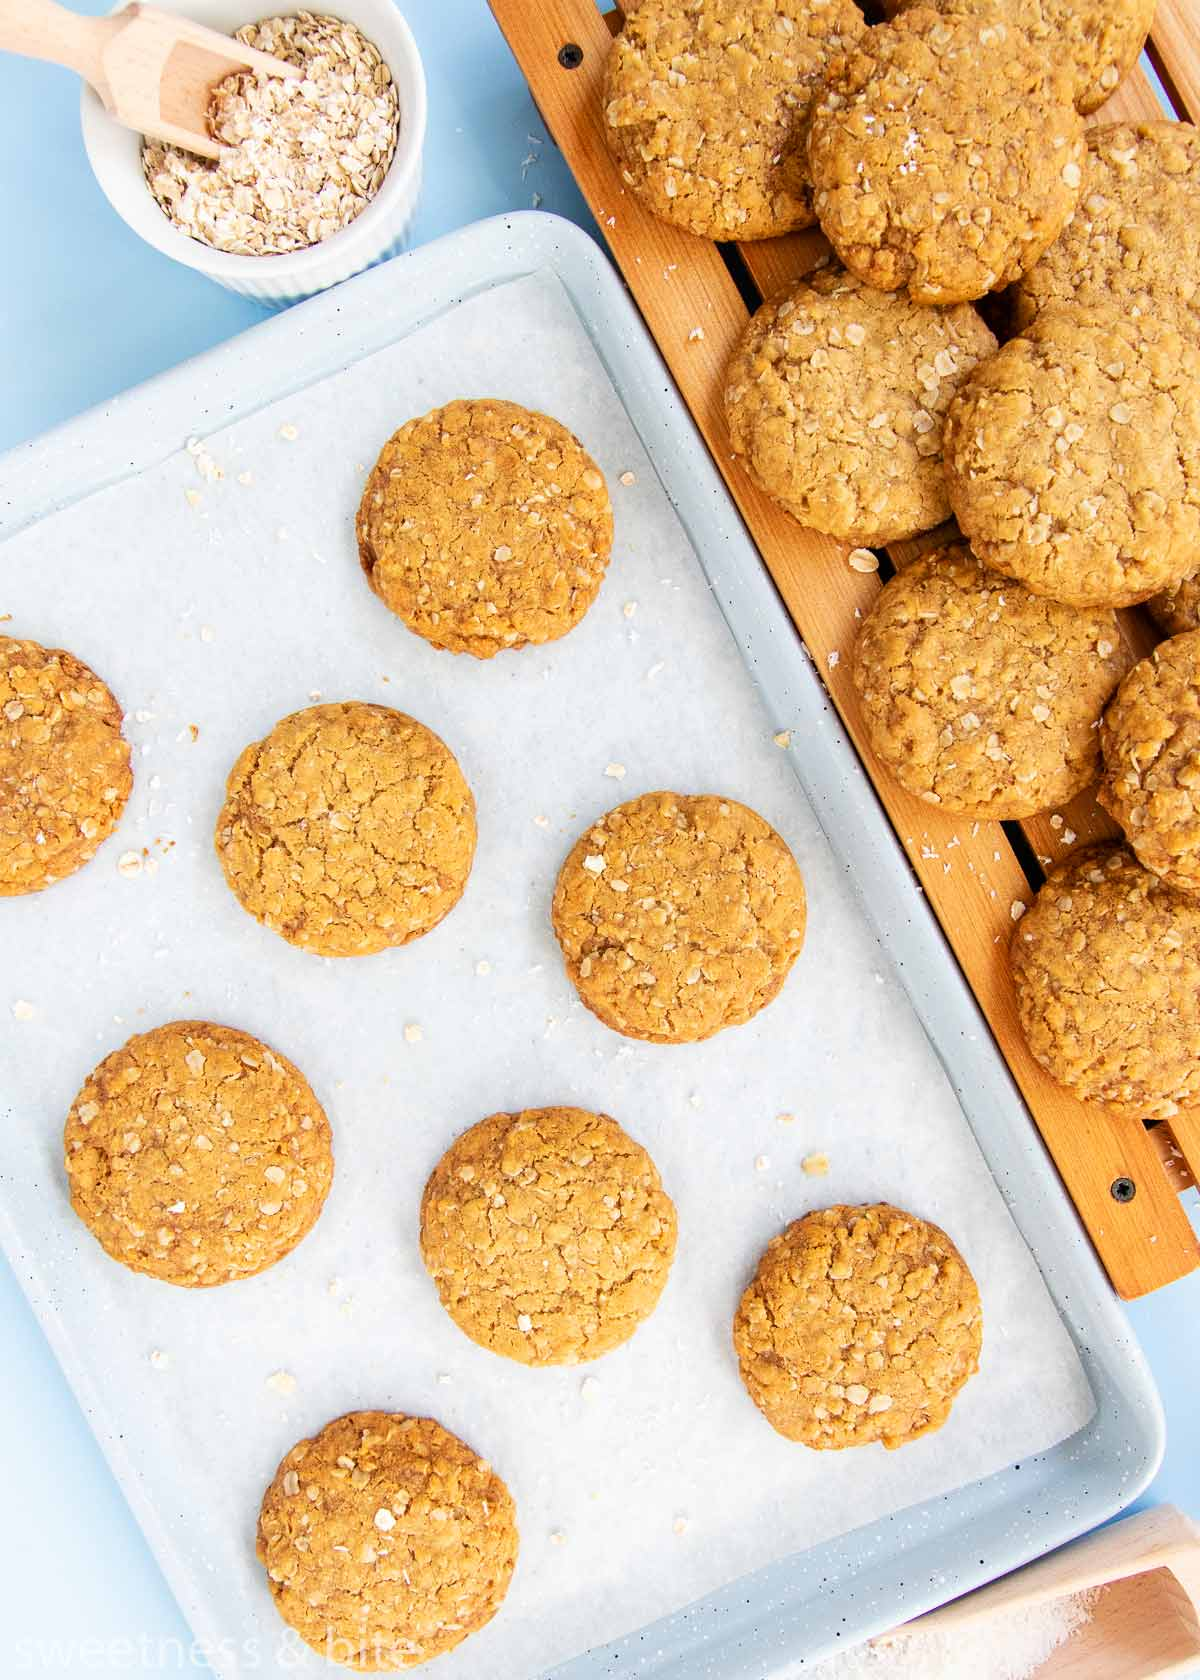 baking tray of gluten free anzac biscuits